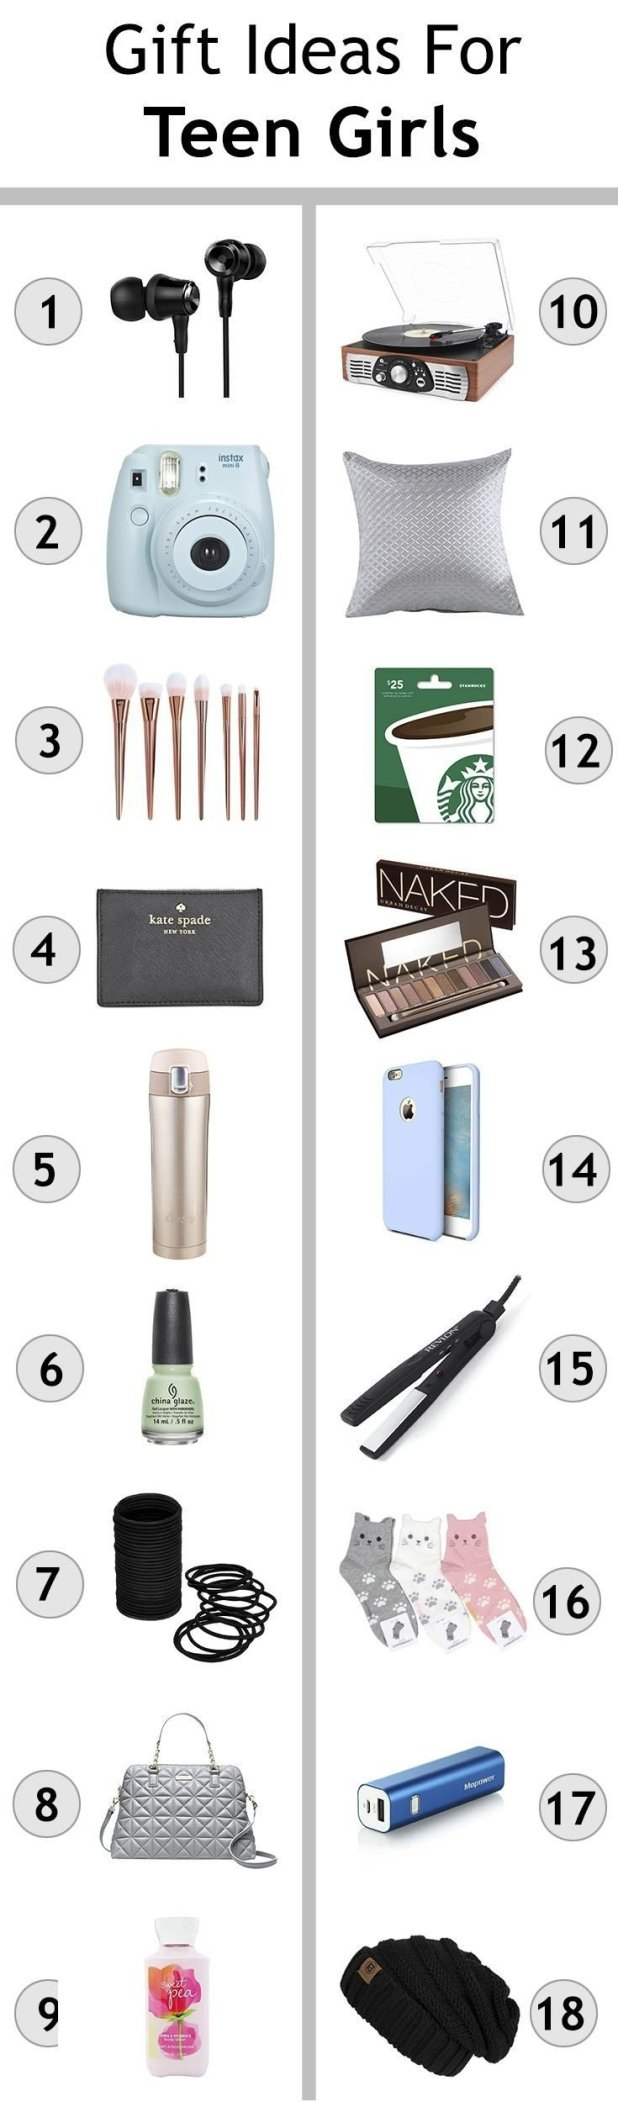 10 pretty christmas gift ideas for 17 year old boy - Christmas Gifts For 18 Year Old Girl